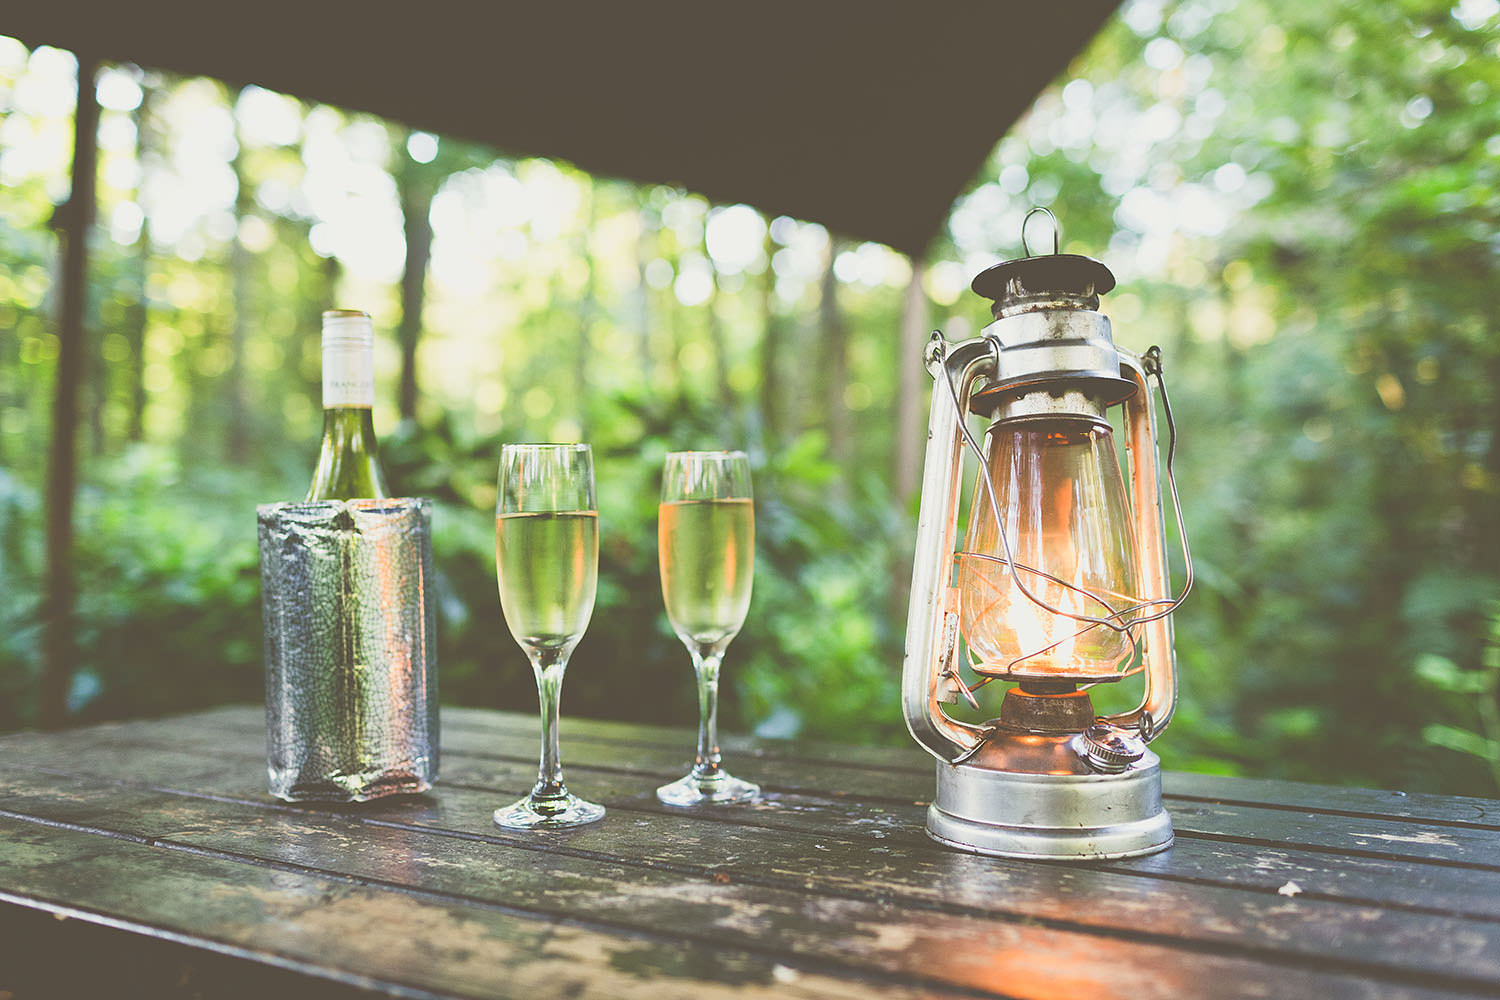 Lantern with two glasses of champagne